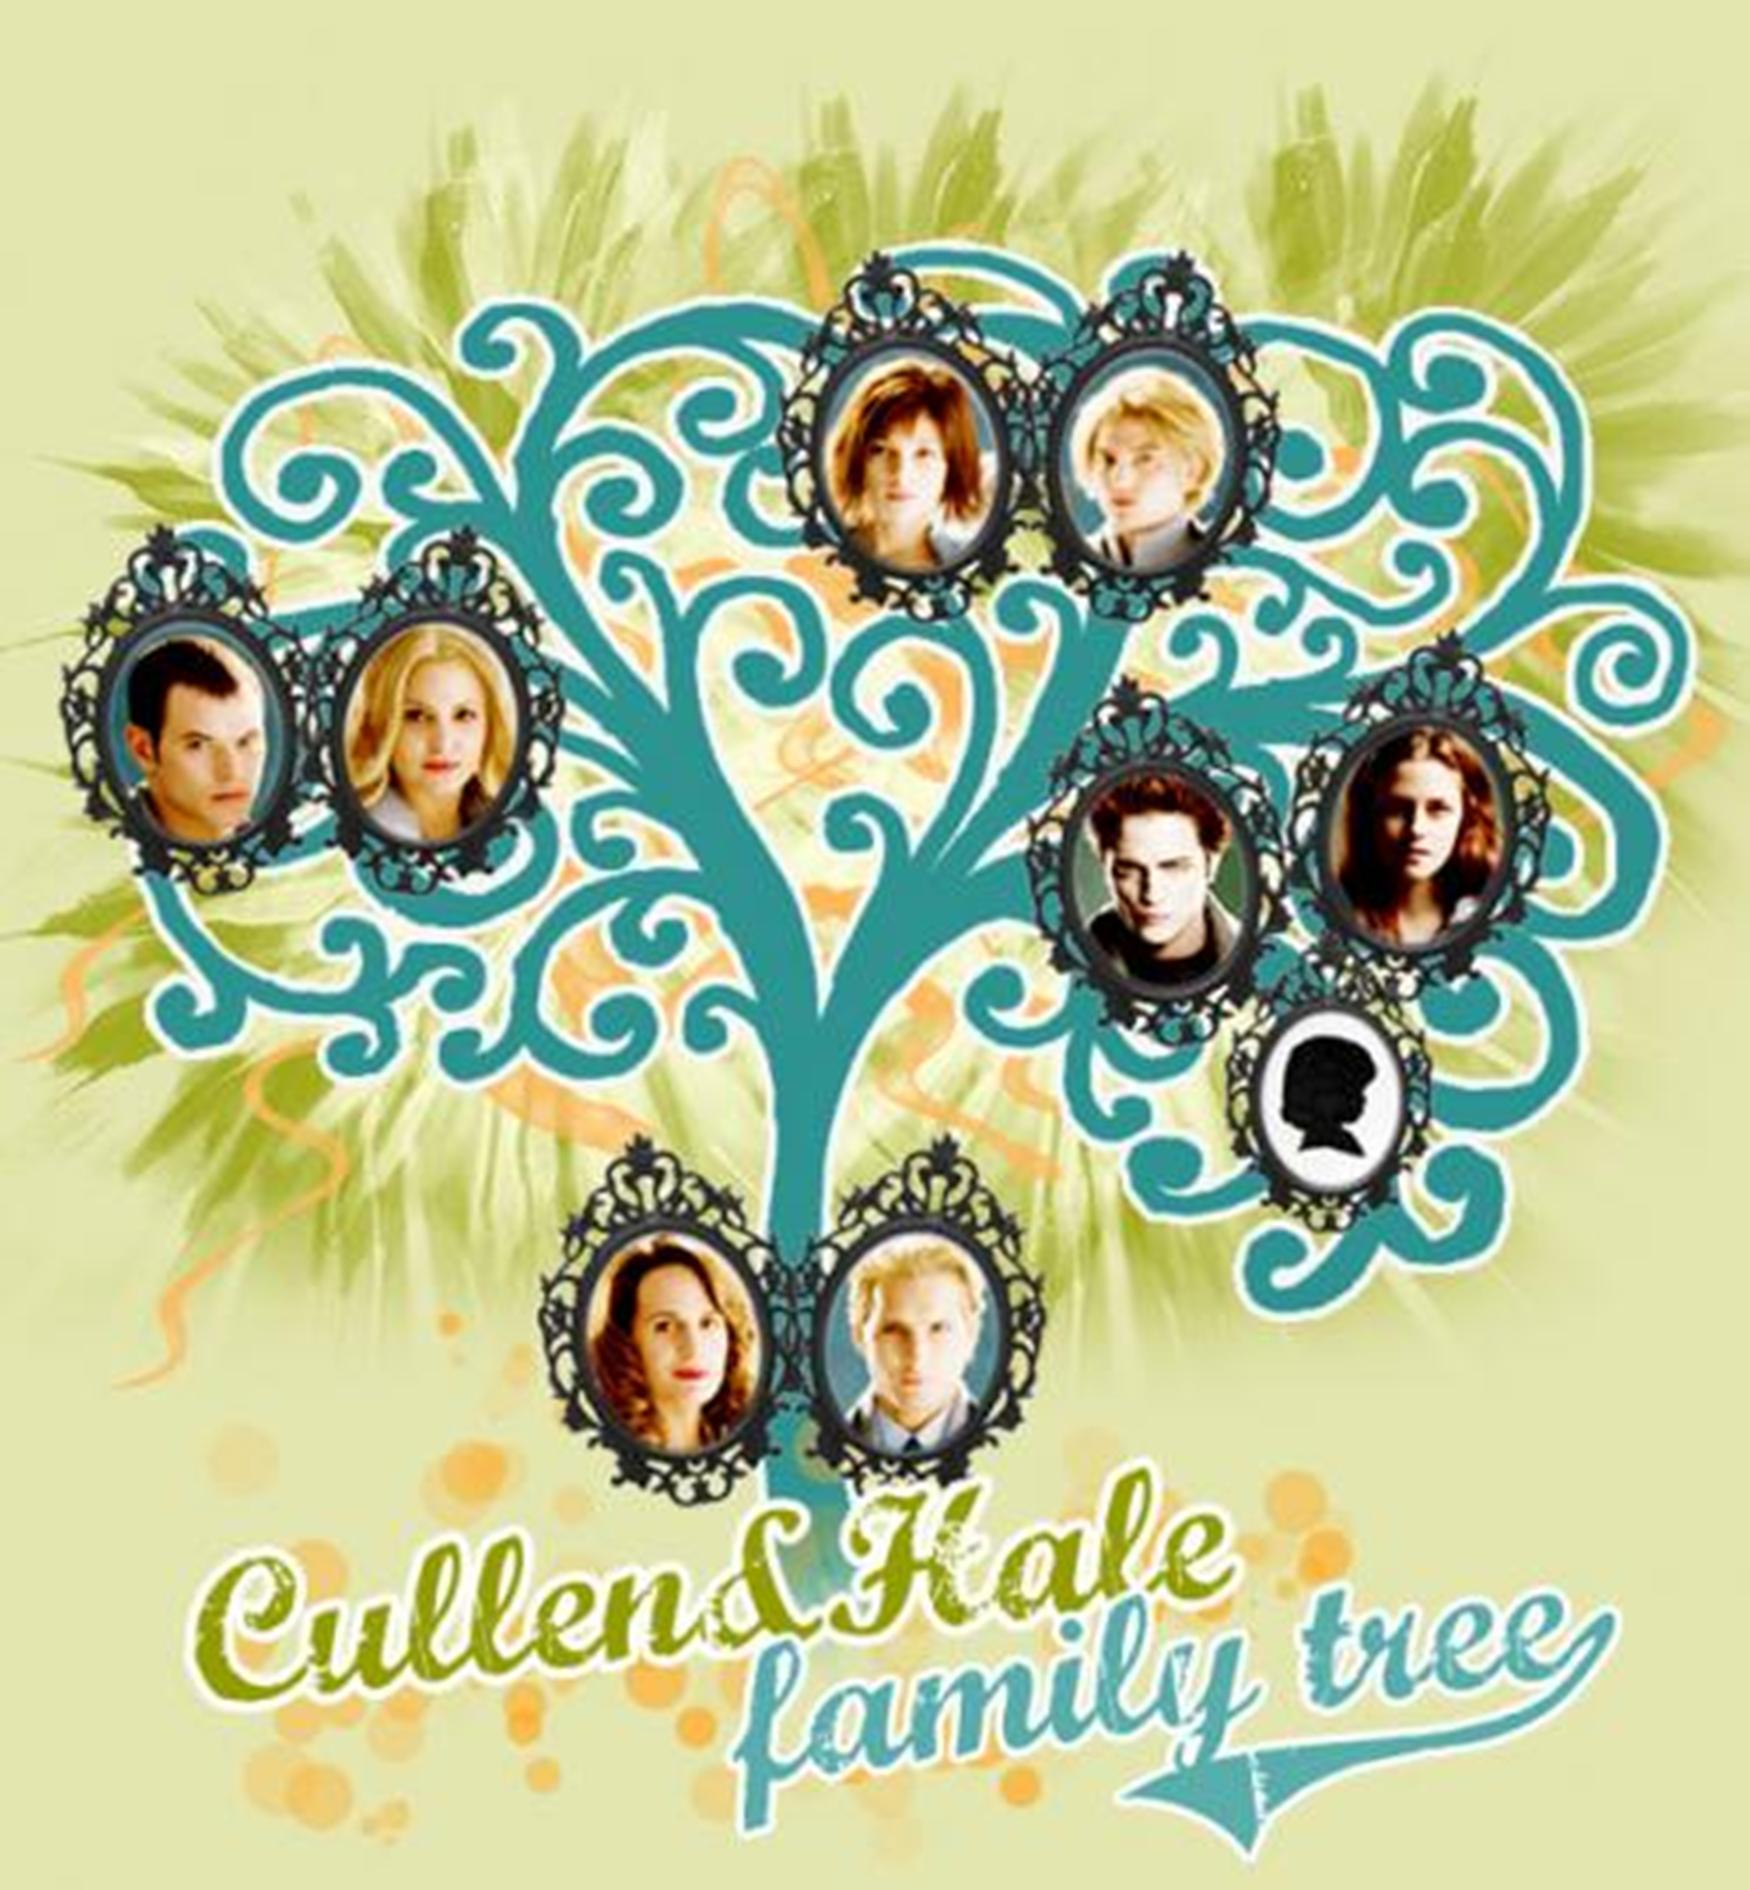 The Cullens Family Tree